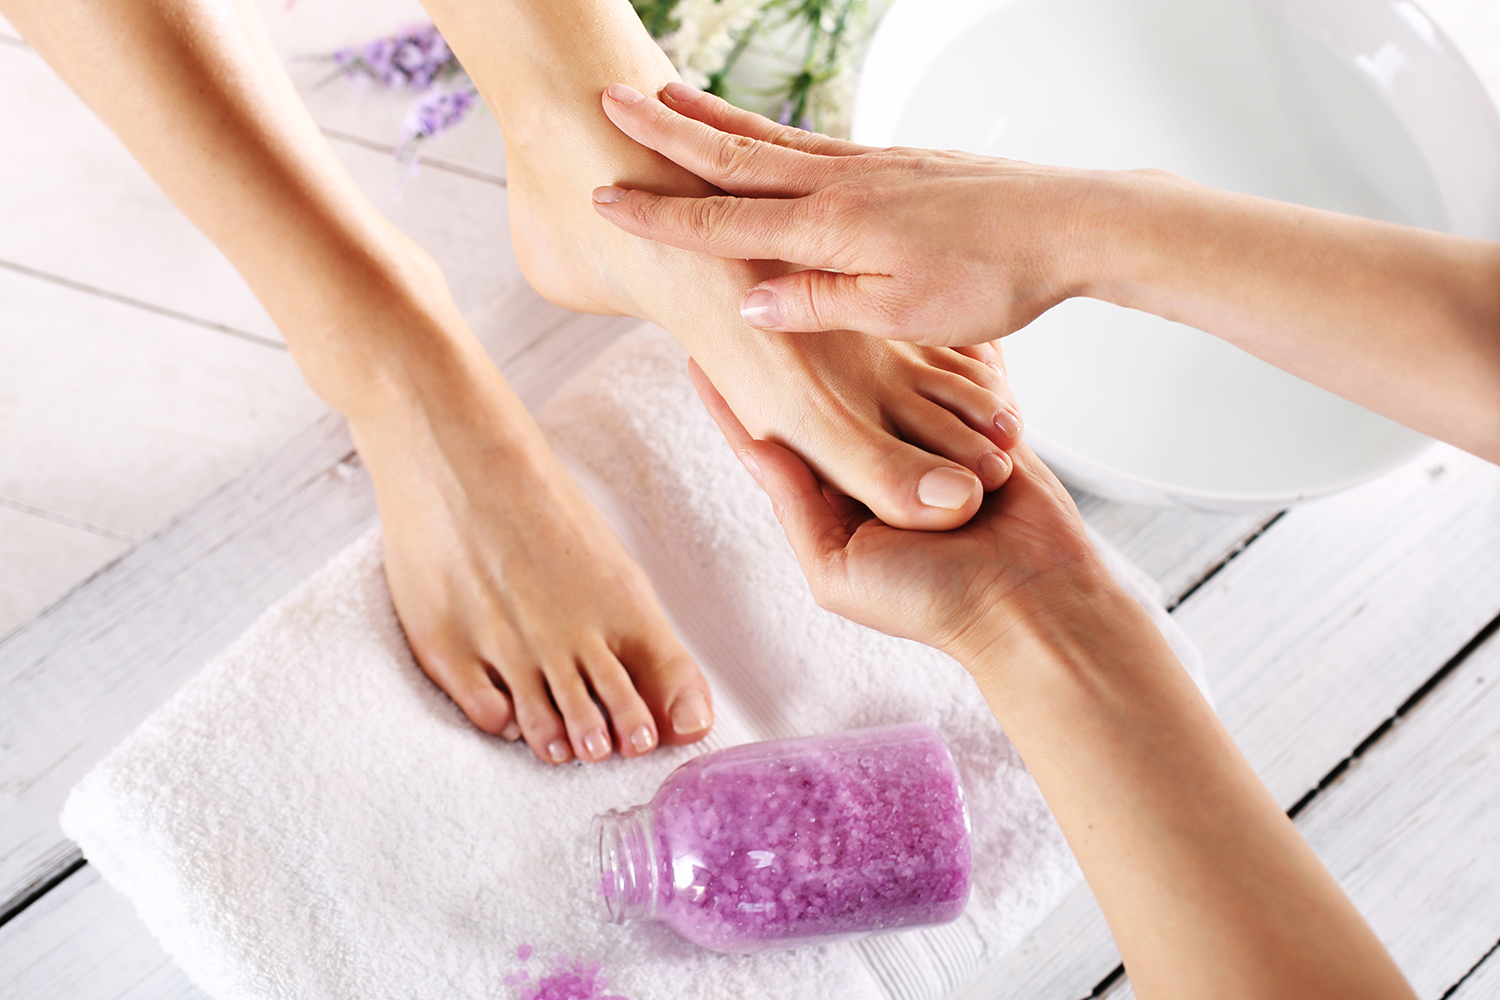 Foot Massage Techniques From Ah To Zzz | Footfiles |Foot Massage